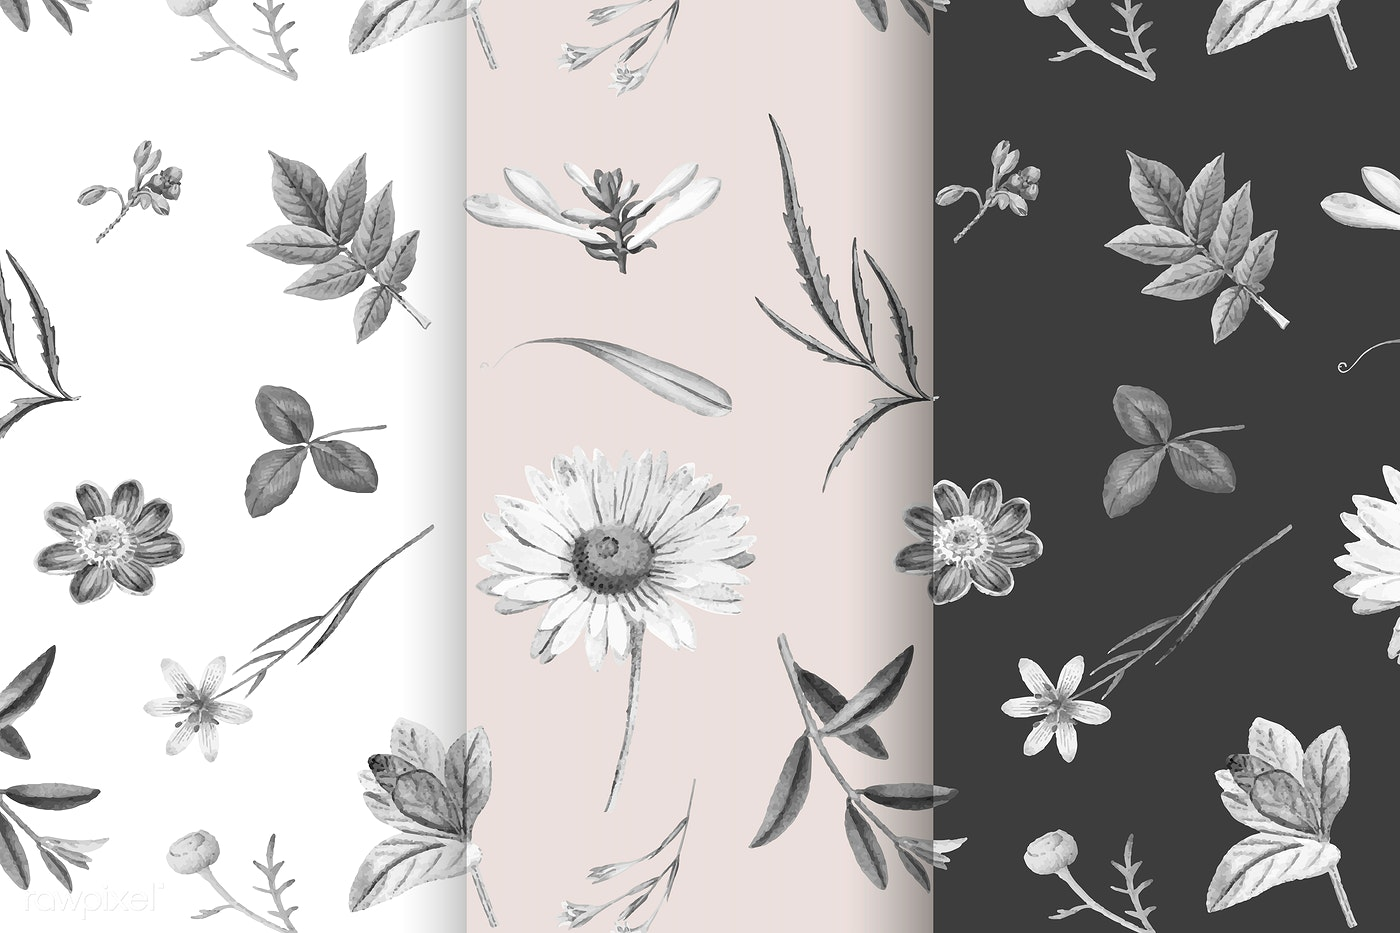 Floral Background Illustration Royalty Free Vector 1201118